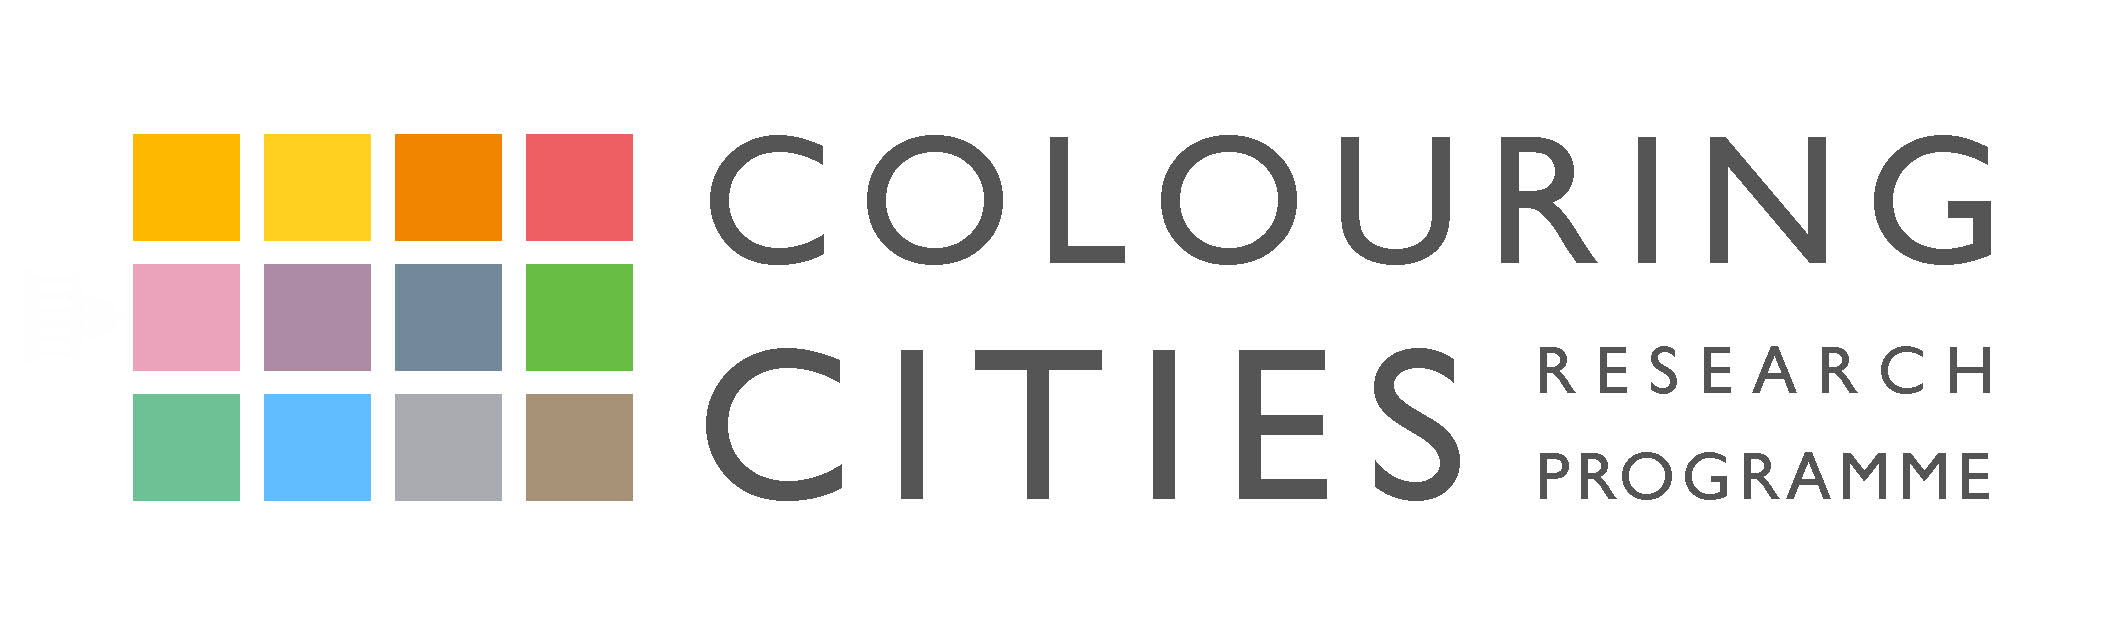 Colouring Cities Research Programme